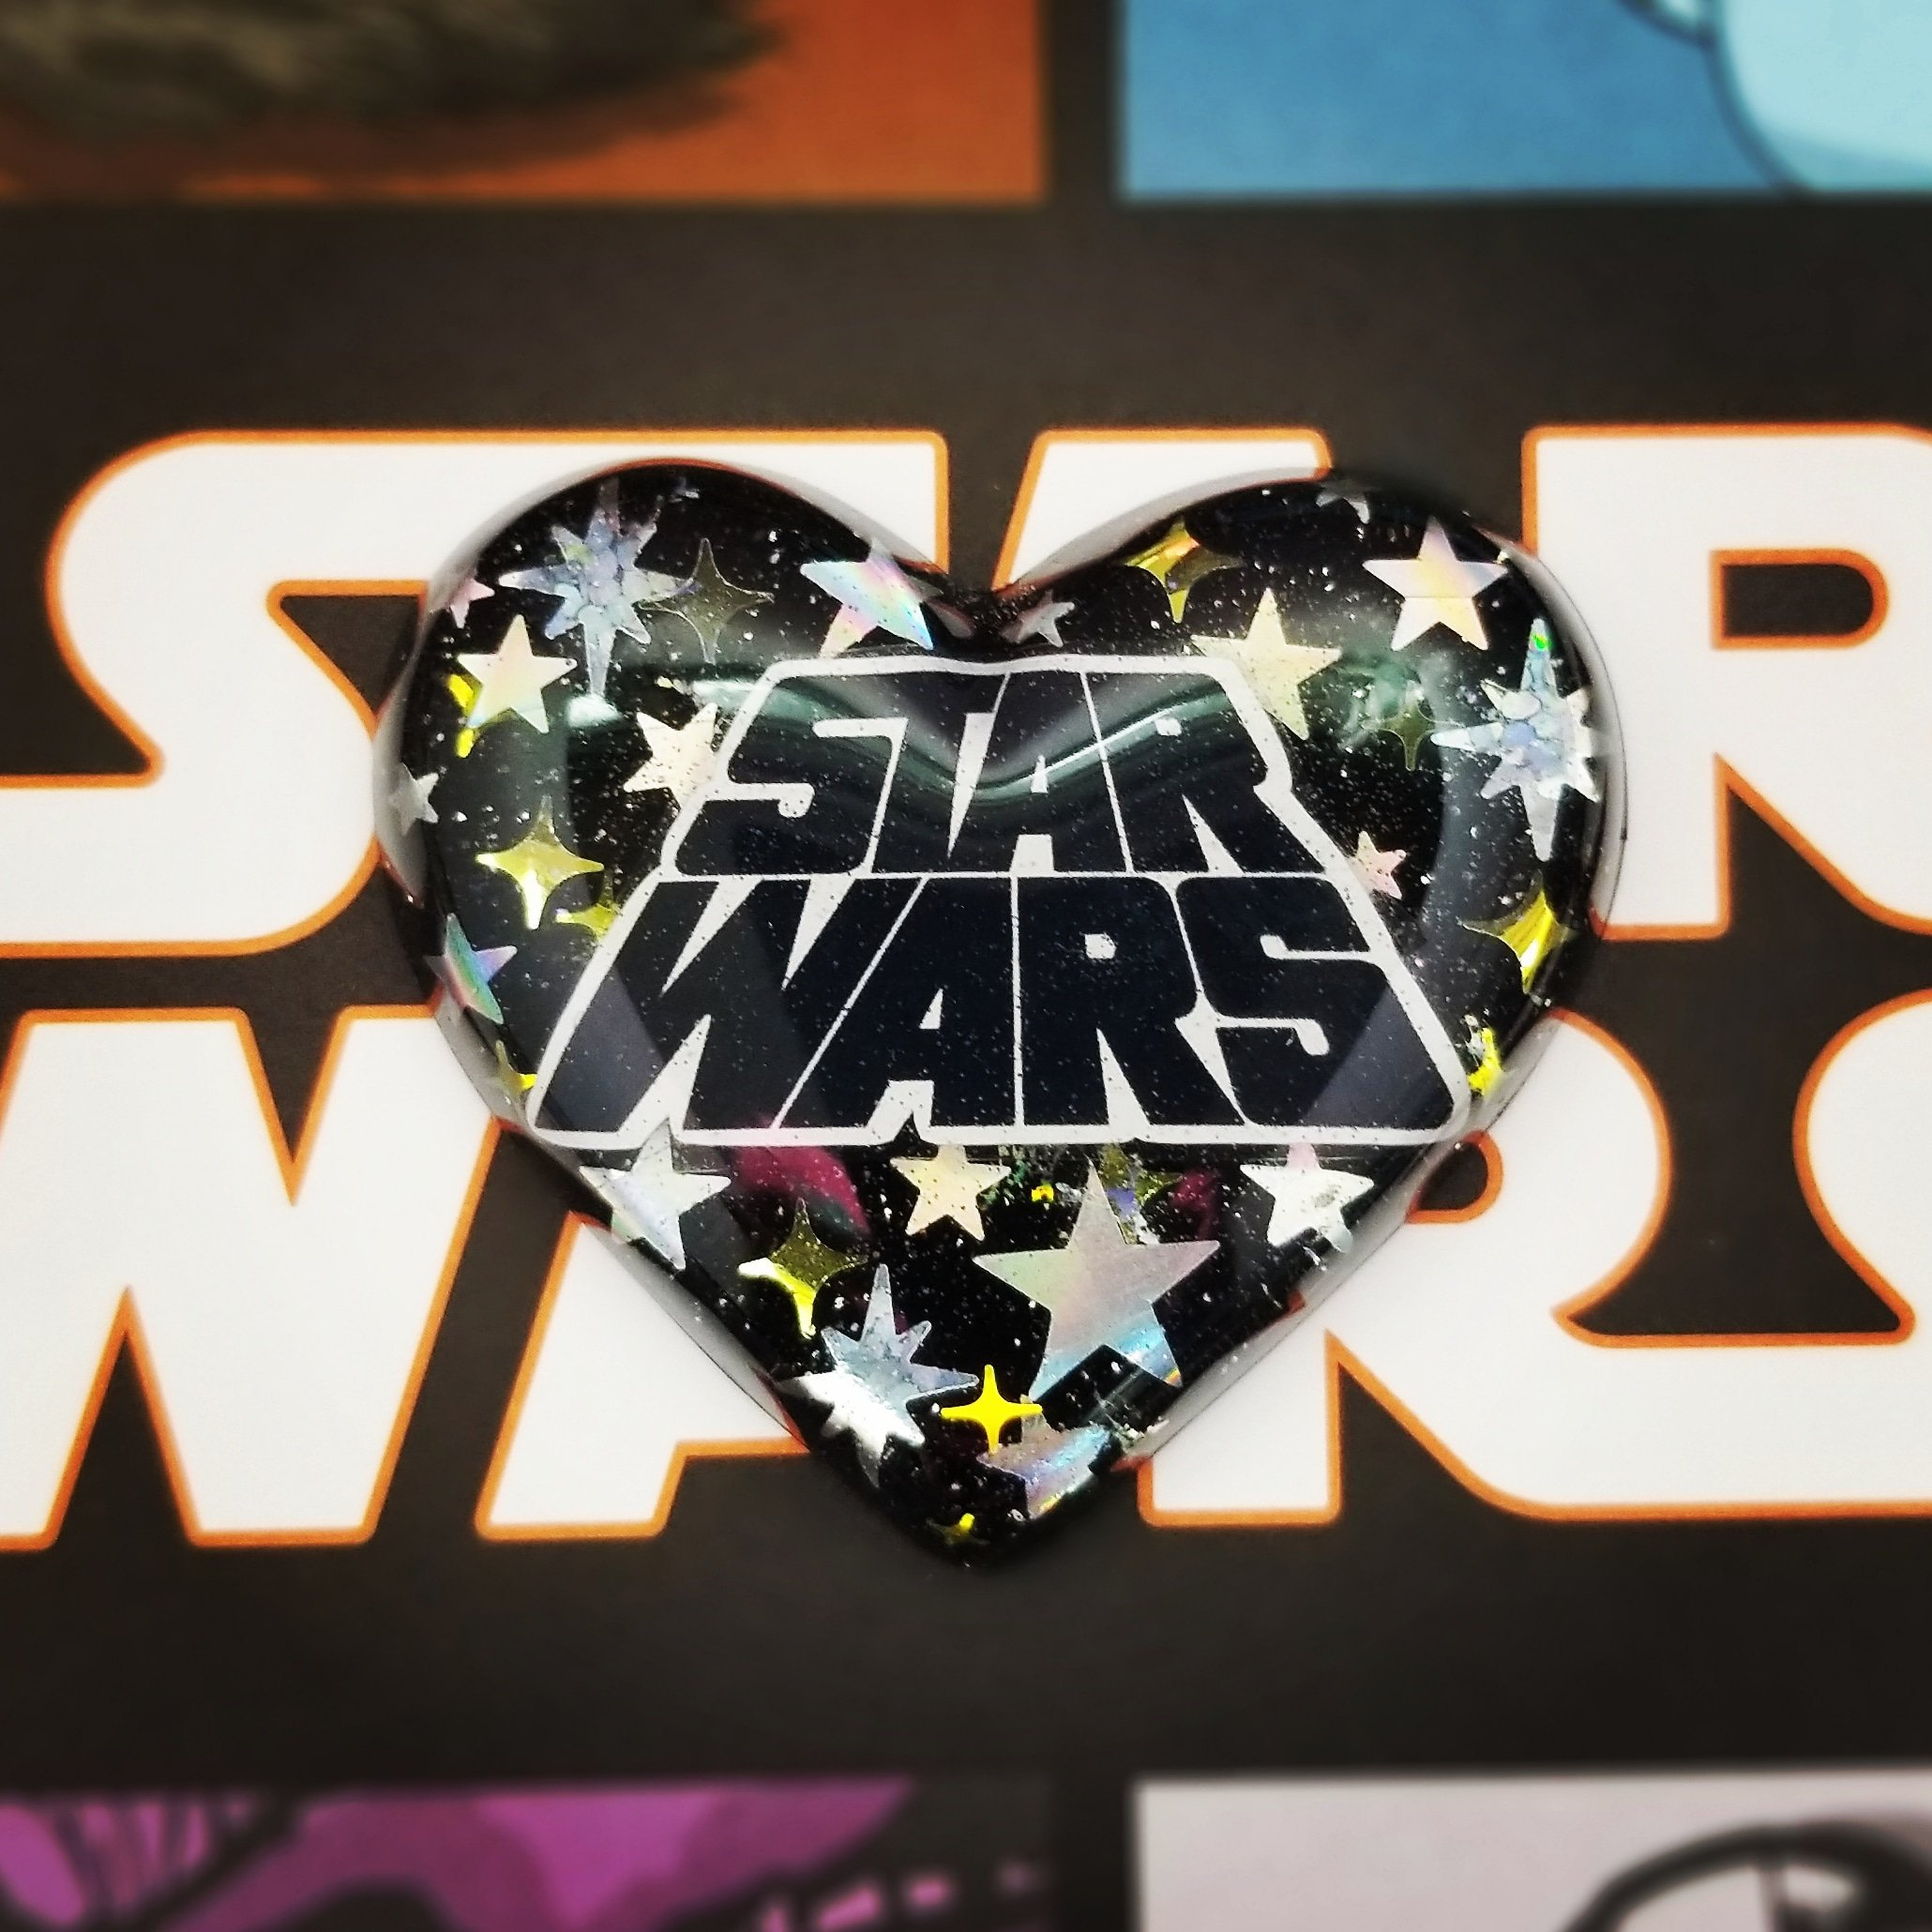 Star Wars Heart Shaped Necklace by Etsy Seller PBnJewelsBoutique